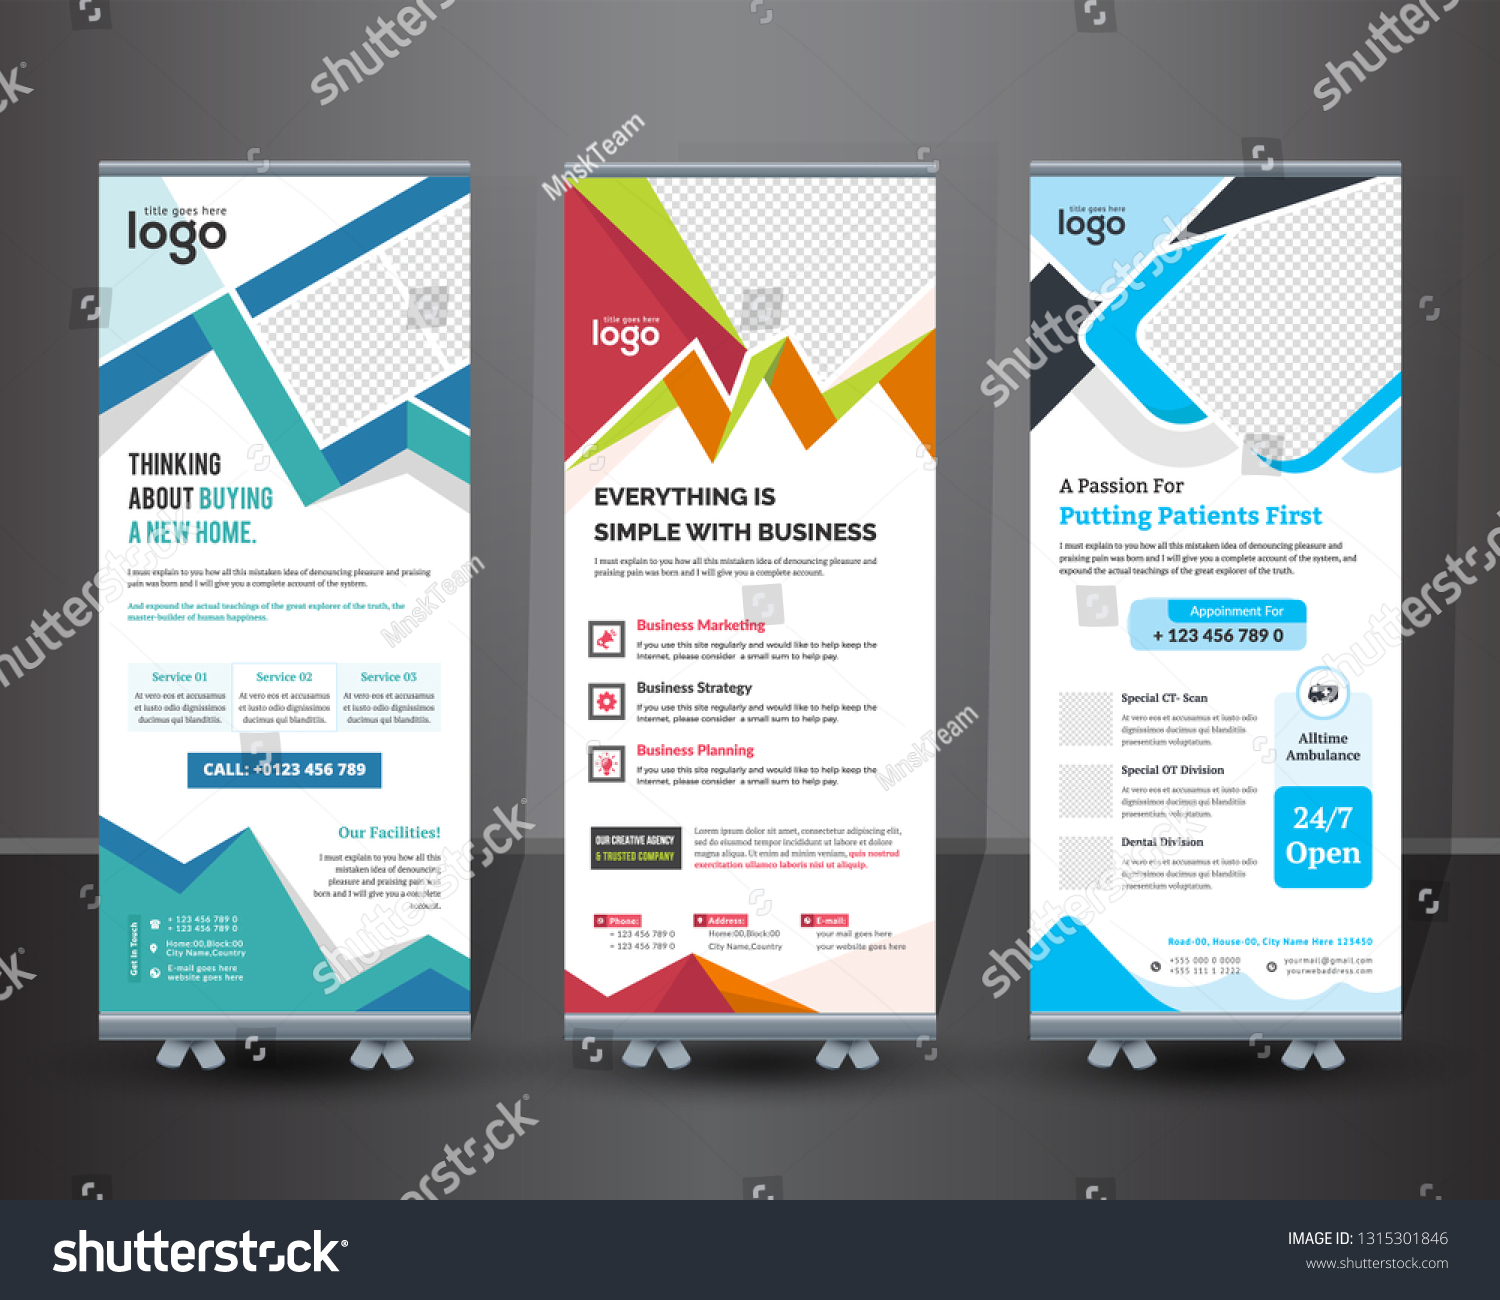 Creative Rollup Banner Design Business Concept Stock Vector Royalty Free 1315301846